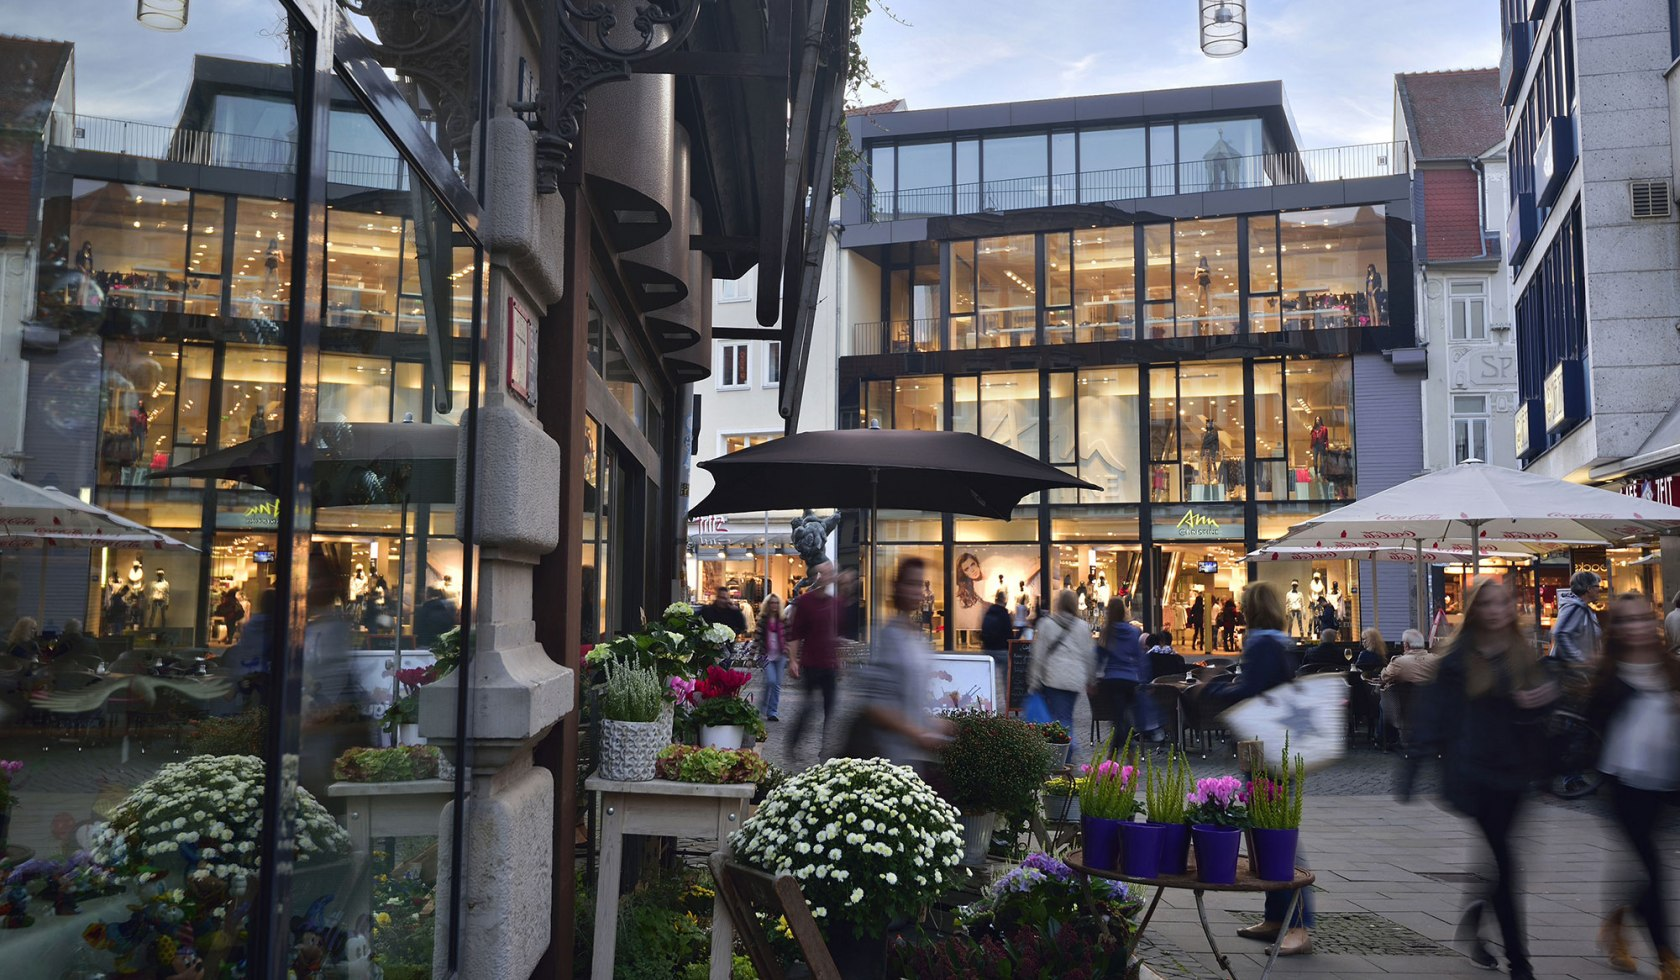 The shopping experience in front of the castle in Braunschweig